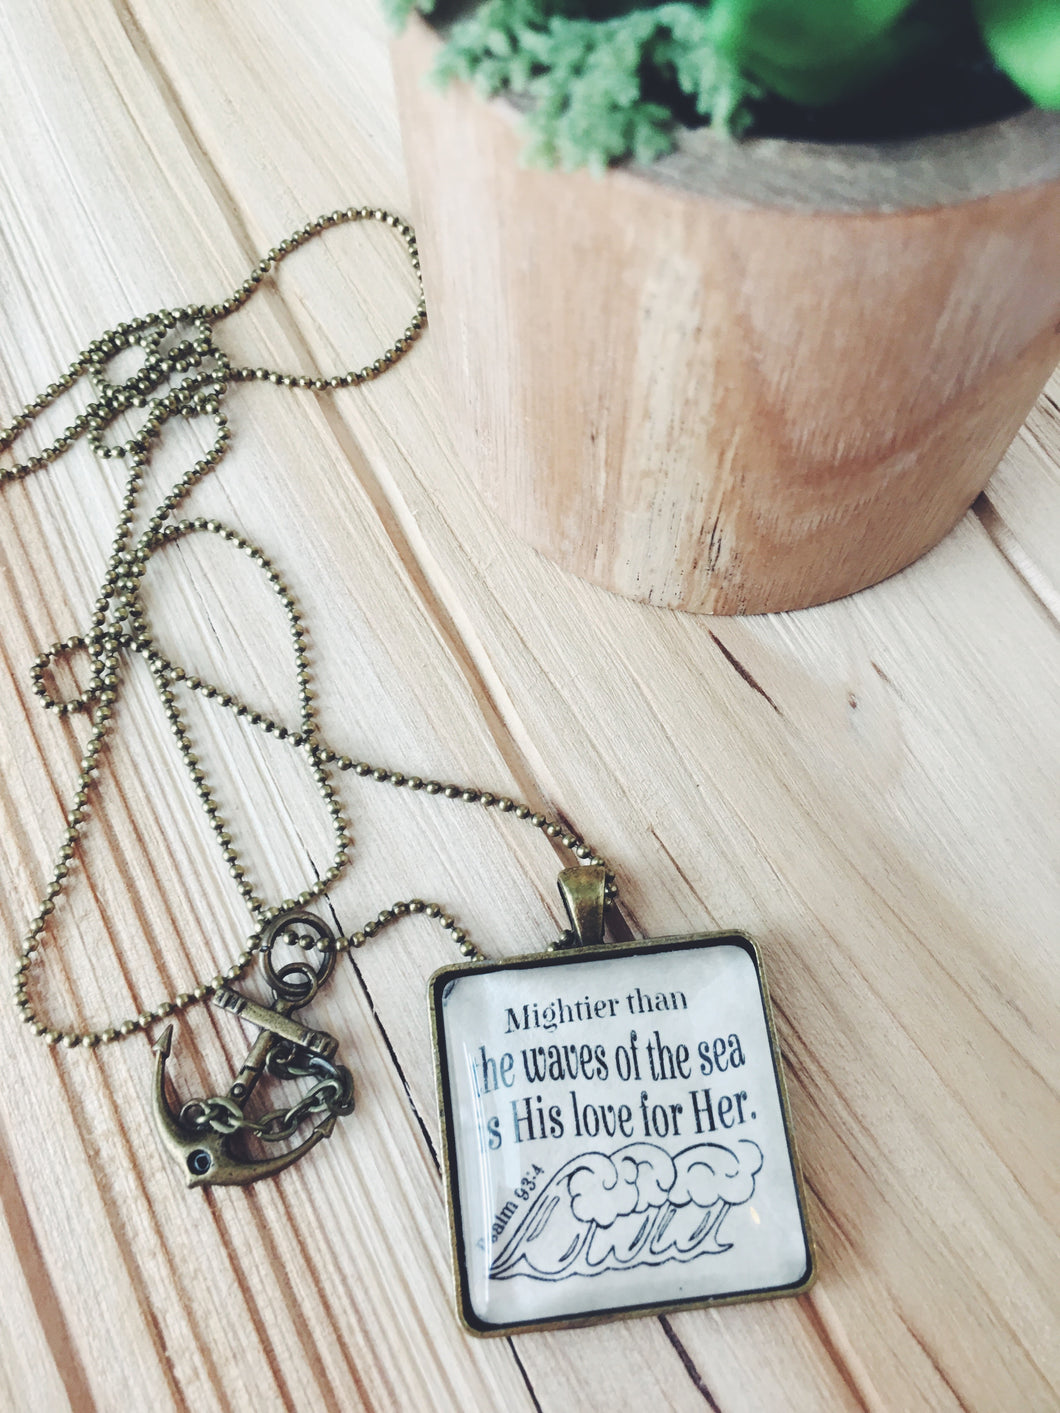 Mightier than Waves of the Sea, Psalm 93:4 Necklace